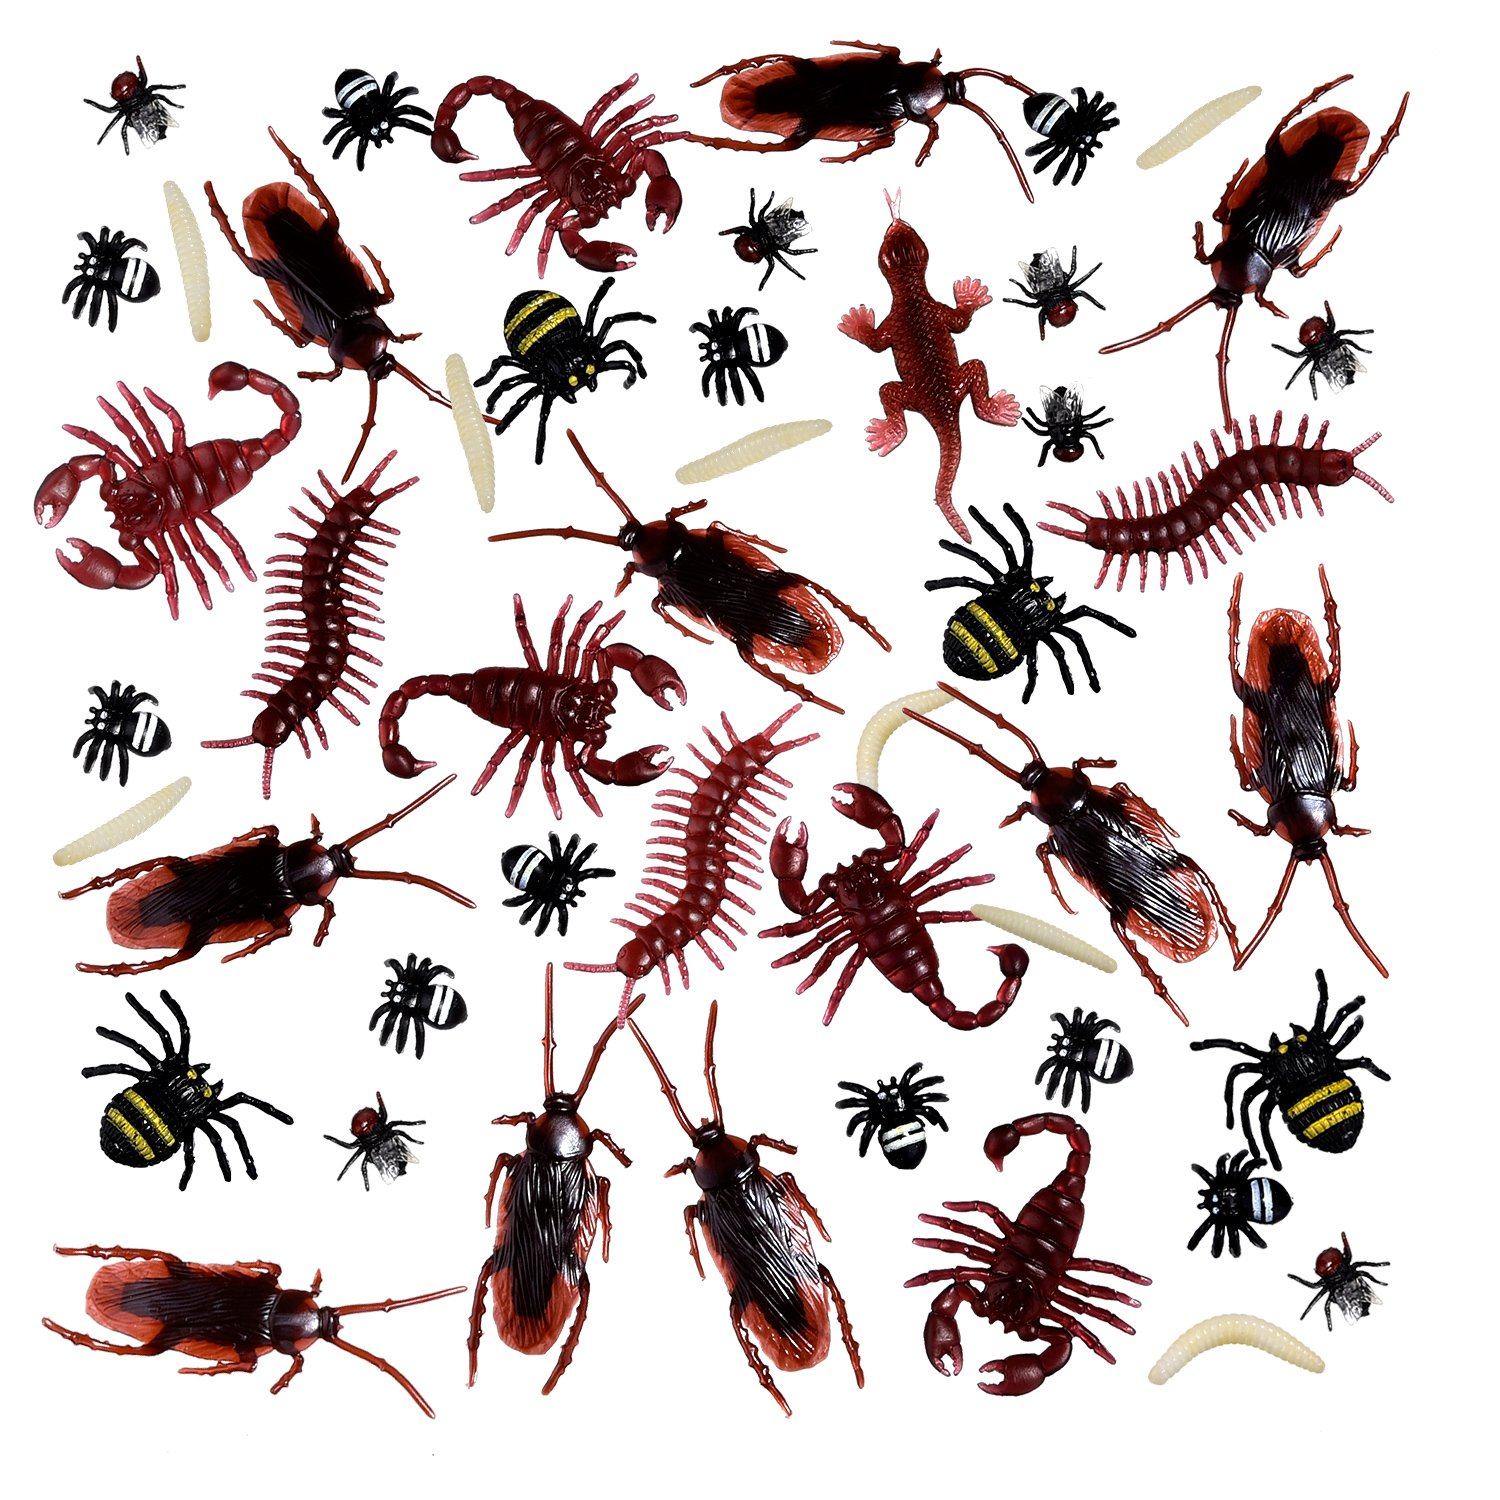 156 Pieces Plastic Realistic Bugs, Fake Cockroaches, Spiders, Worms and Flies for Halloween Party and Decoration BBTO